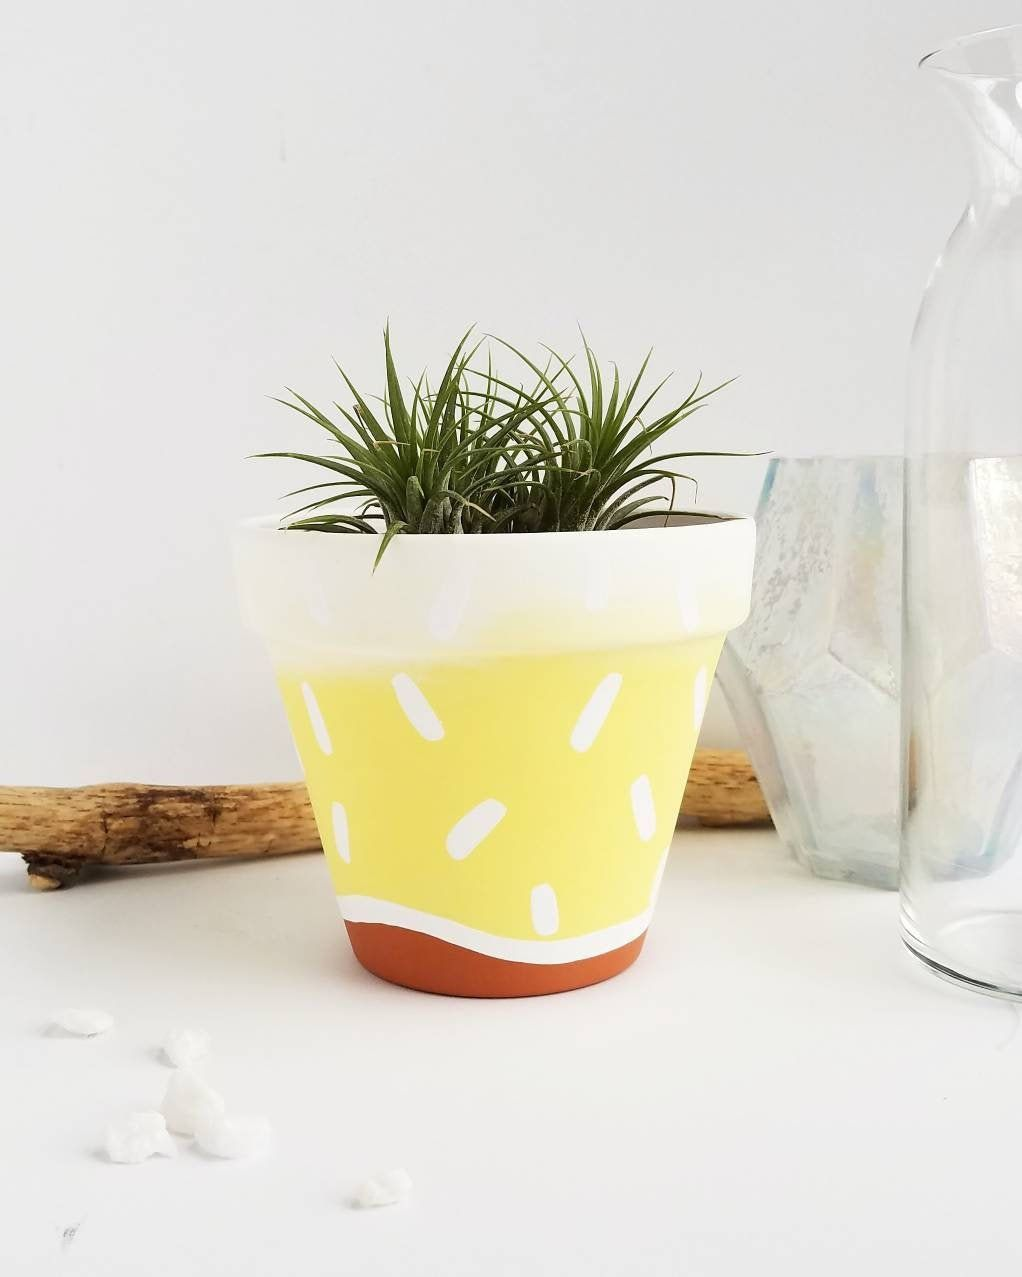 Hand Painted Terra Cotta Pot Yellow And White Painted Terra Cotta Pot With Varnish Indoor Planter 4 Inch Pot With Drainage Hole Cotta Drainage Hand Hole In 2020